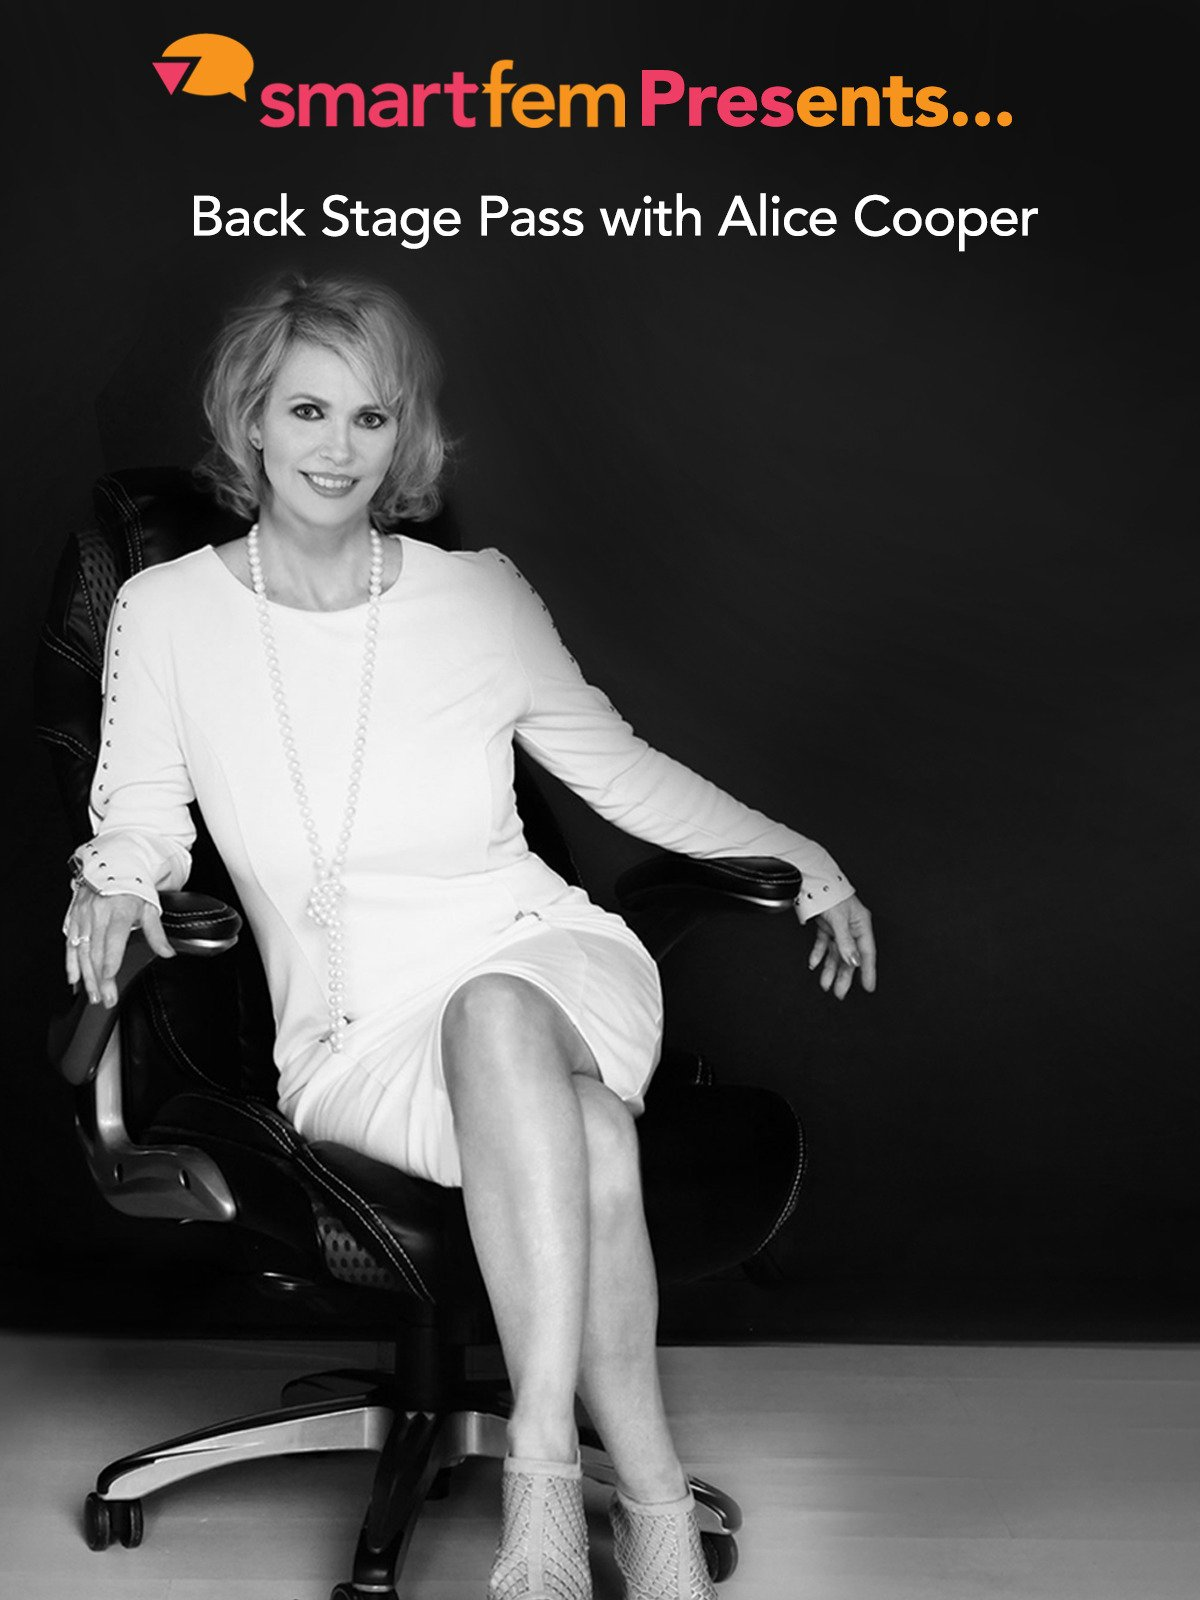 smartfem Presents Back Stage Pass with Alice Cooper on Amazon Prime Video UK